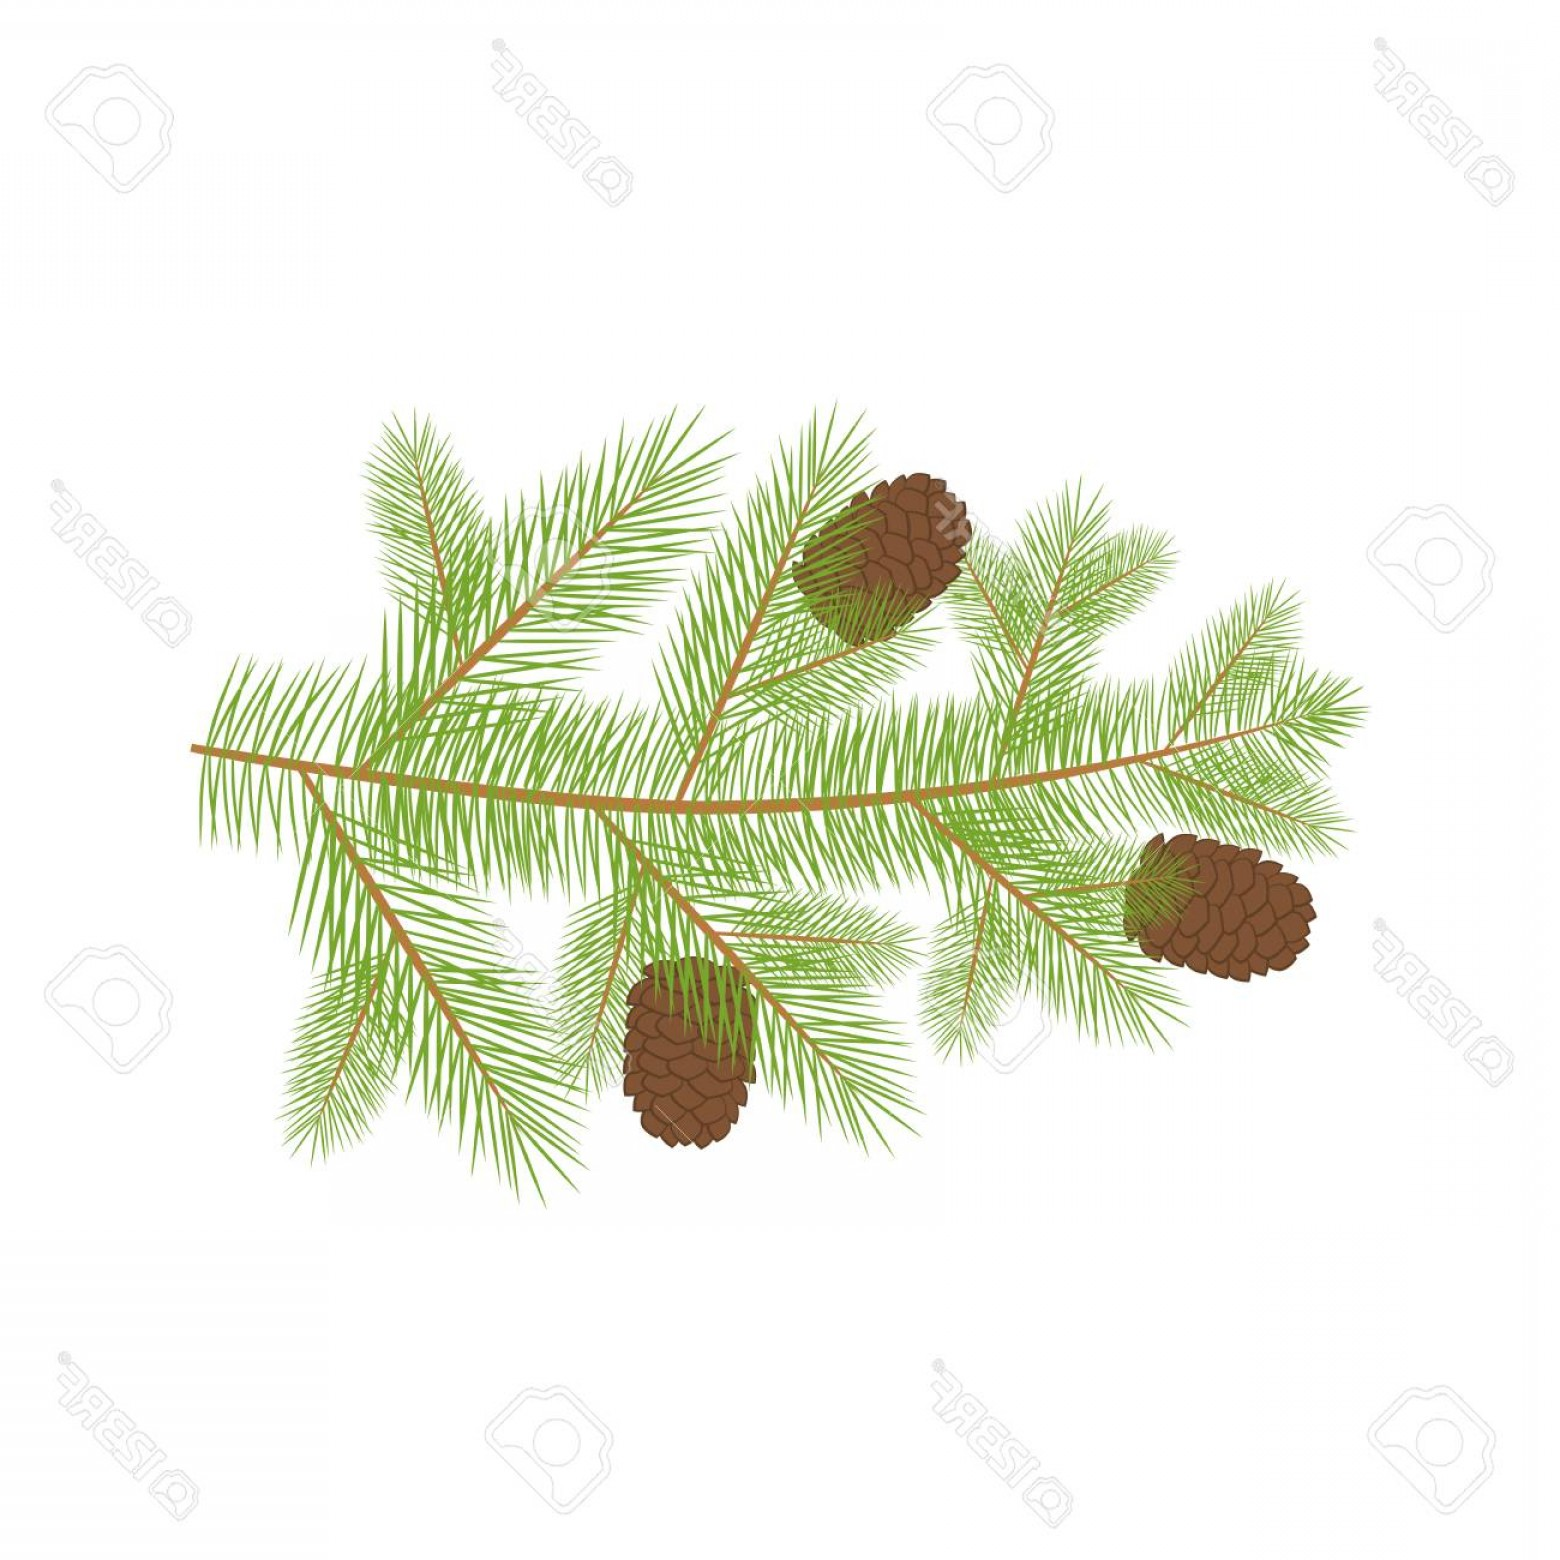 Pine Tree Vector Format: Photostock Vector Small Christmas Fur Tree Branch With Natural Pine Cones In Vector Format